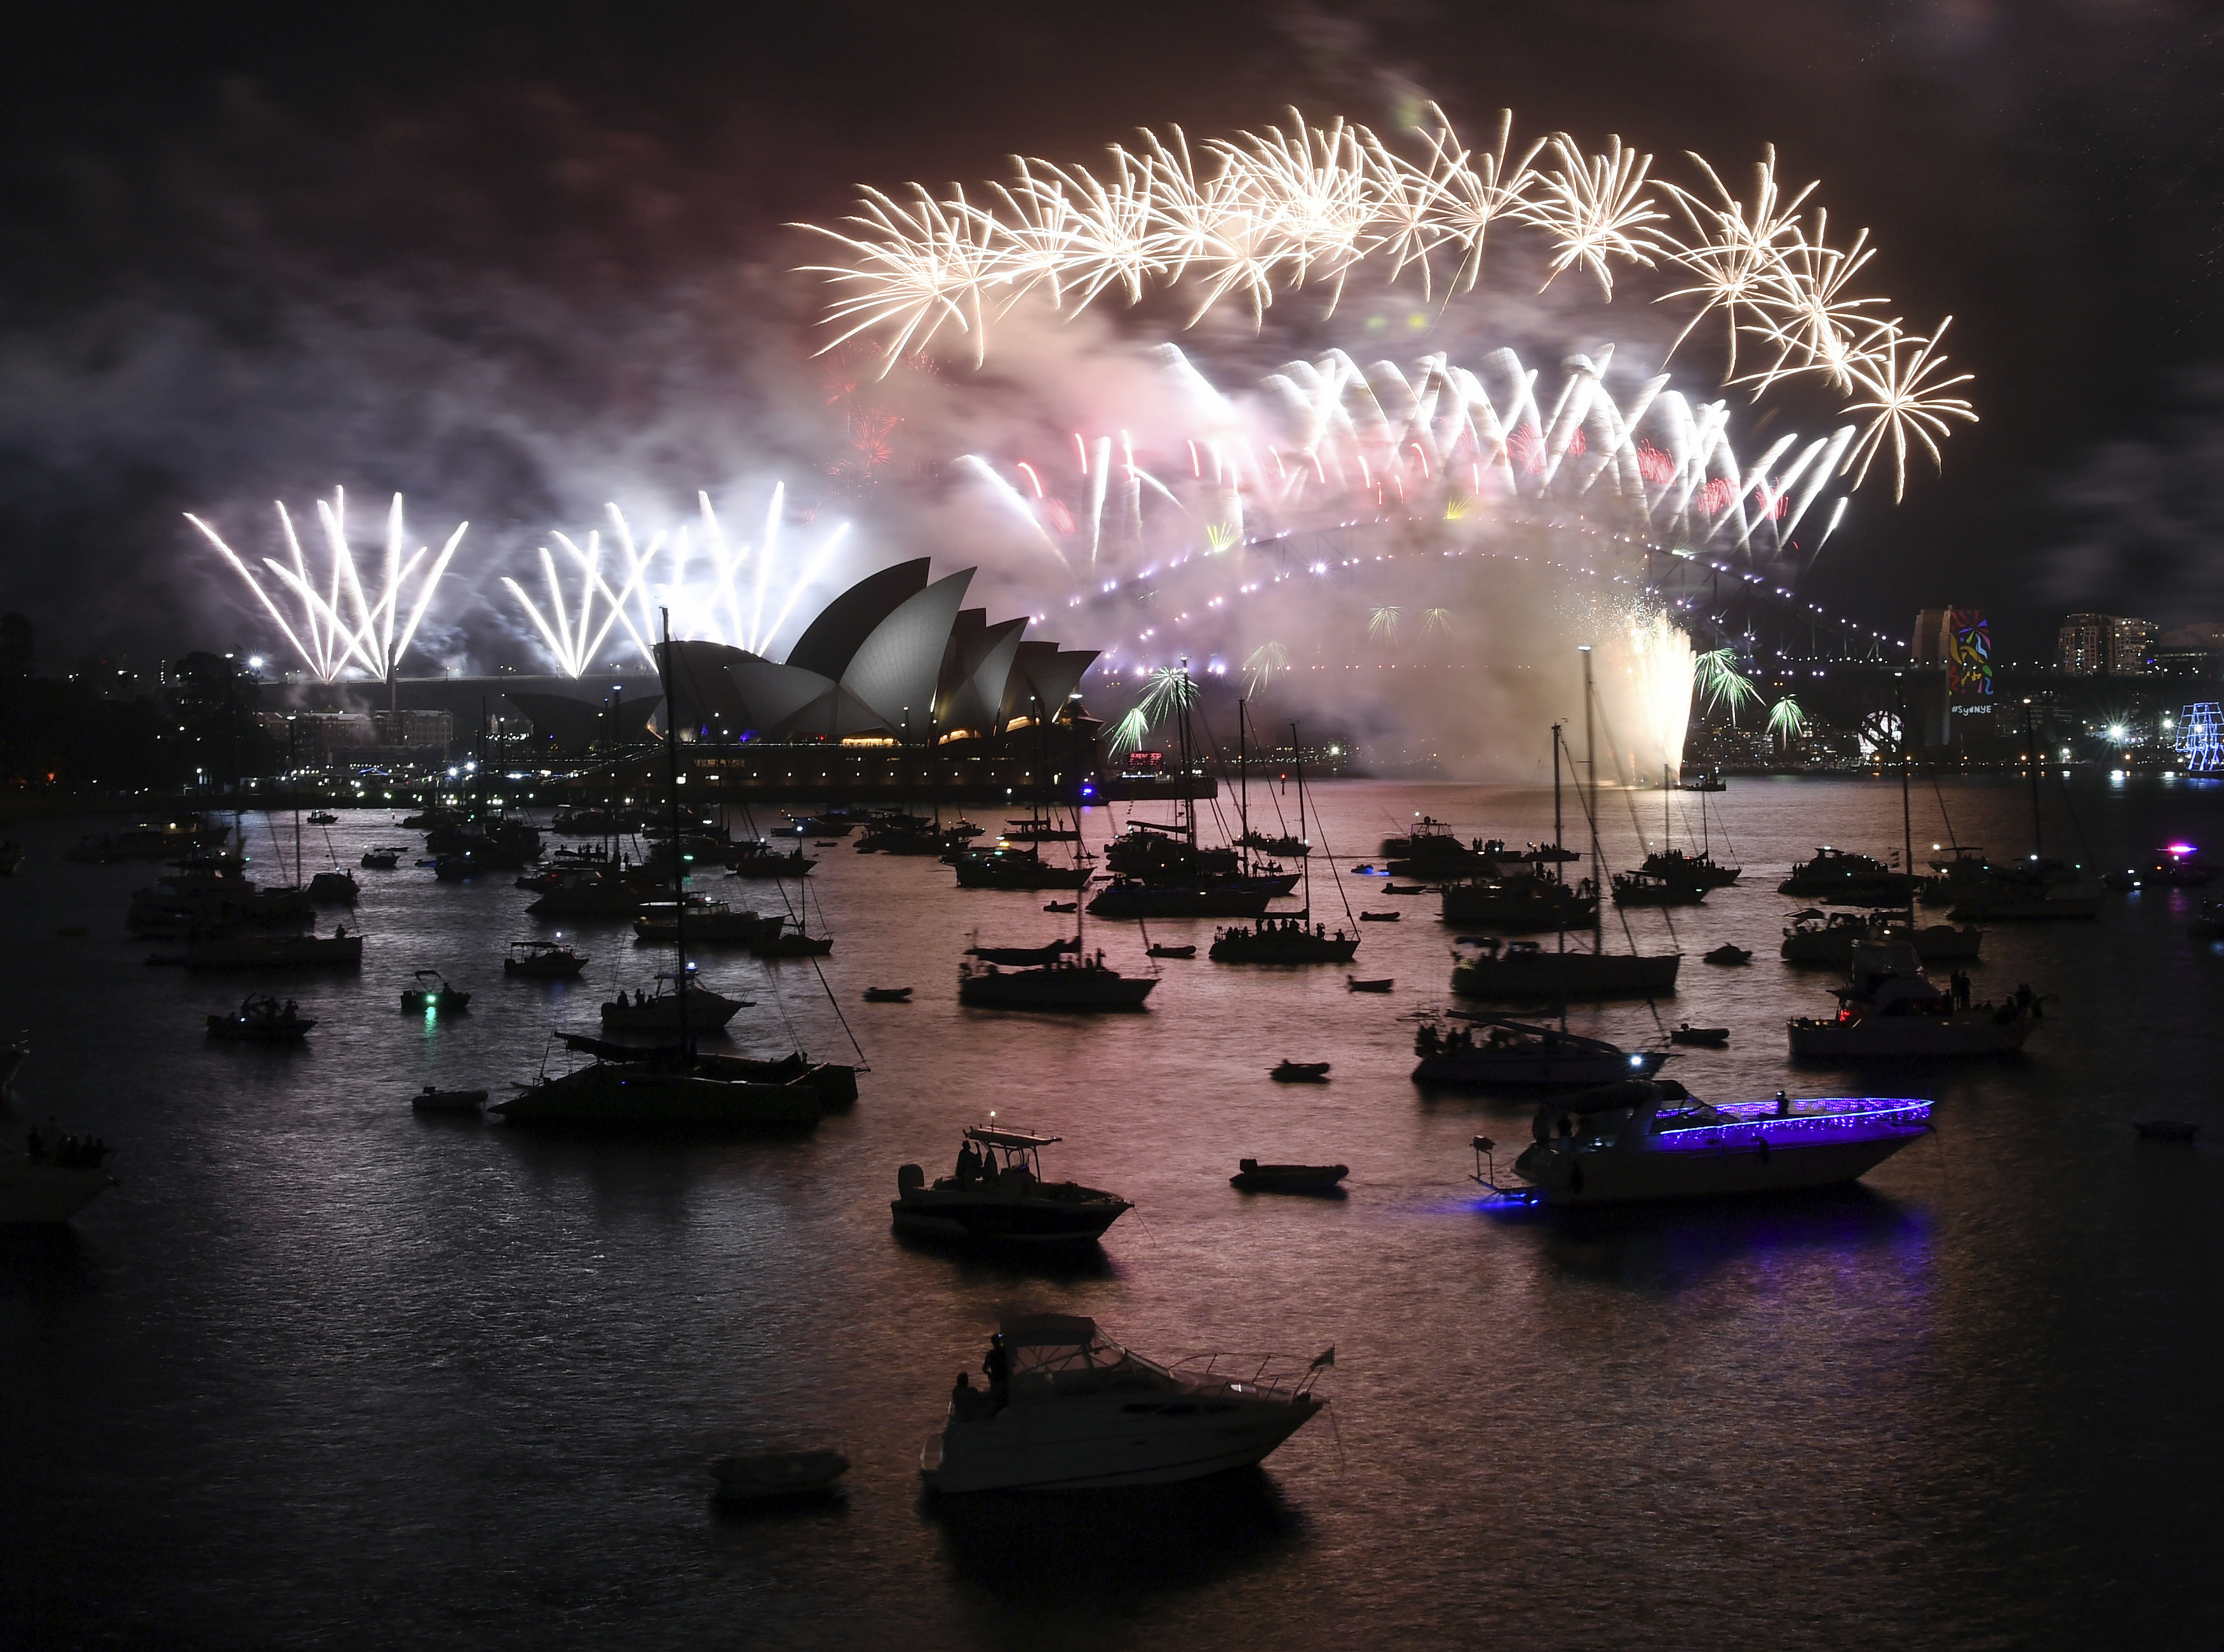 <div class='meta'><div class='origin-logo' data-origin='AP'></div><span class='caption-text' data-credit='David Moir/AAP Image via AP'>Fireworks explode over Sydney Harbour during New Year's Eve celebrations in Sydney, Monday, Jan. 1, 2018.</span></div>